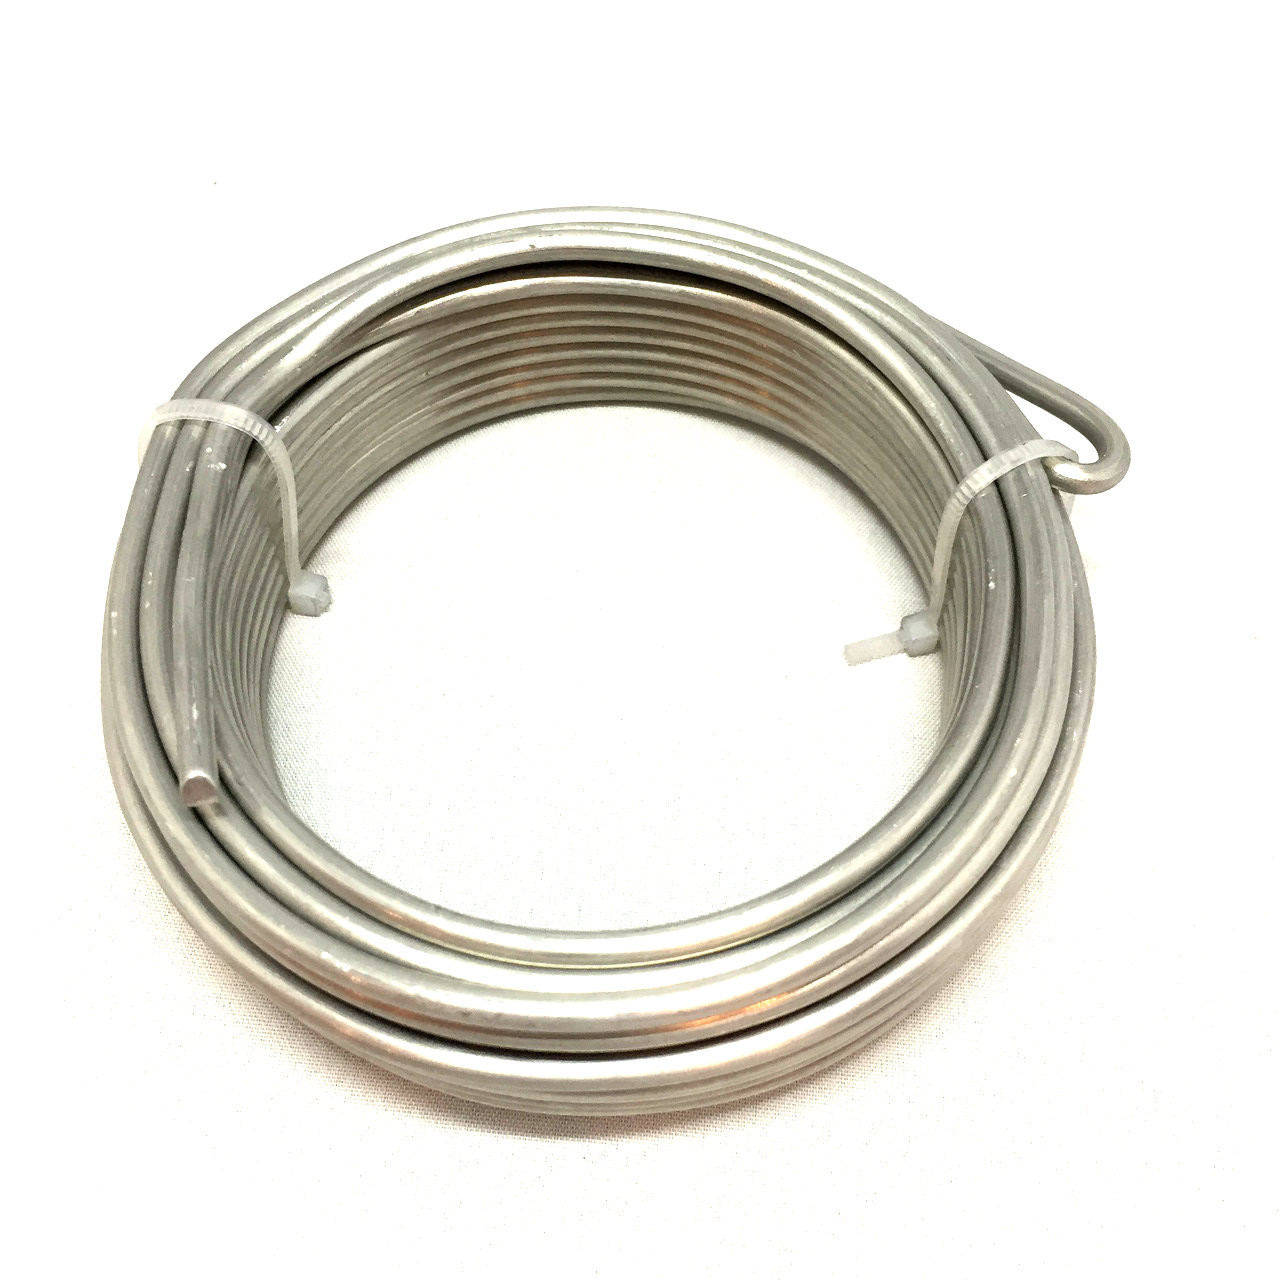 Aluminium Wire 3mm x 7.5 meters